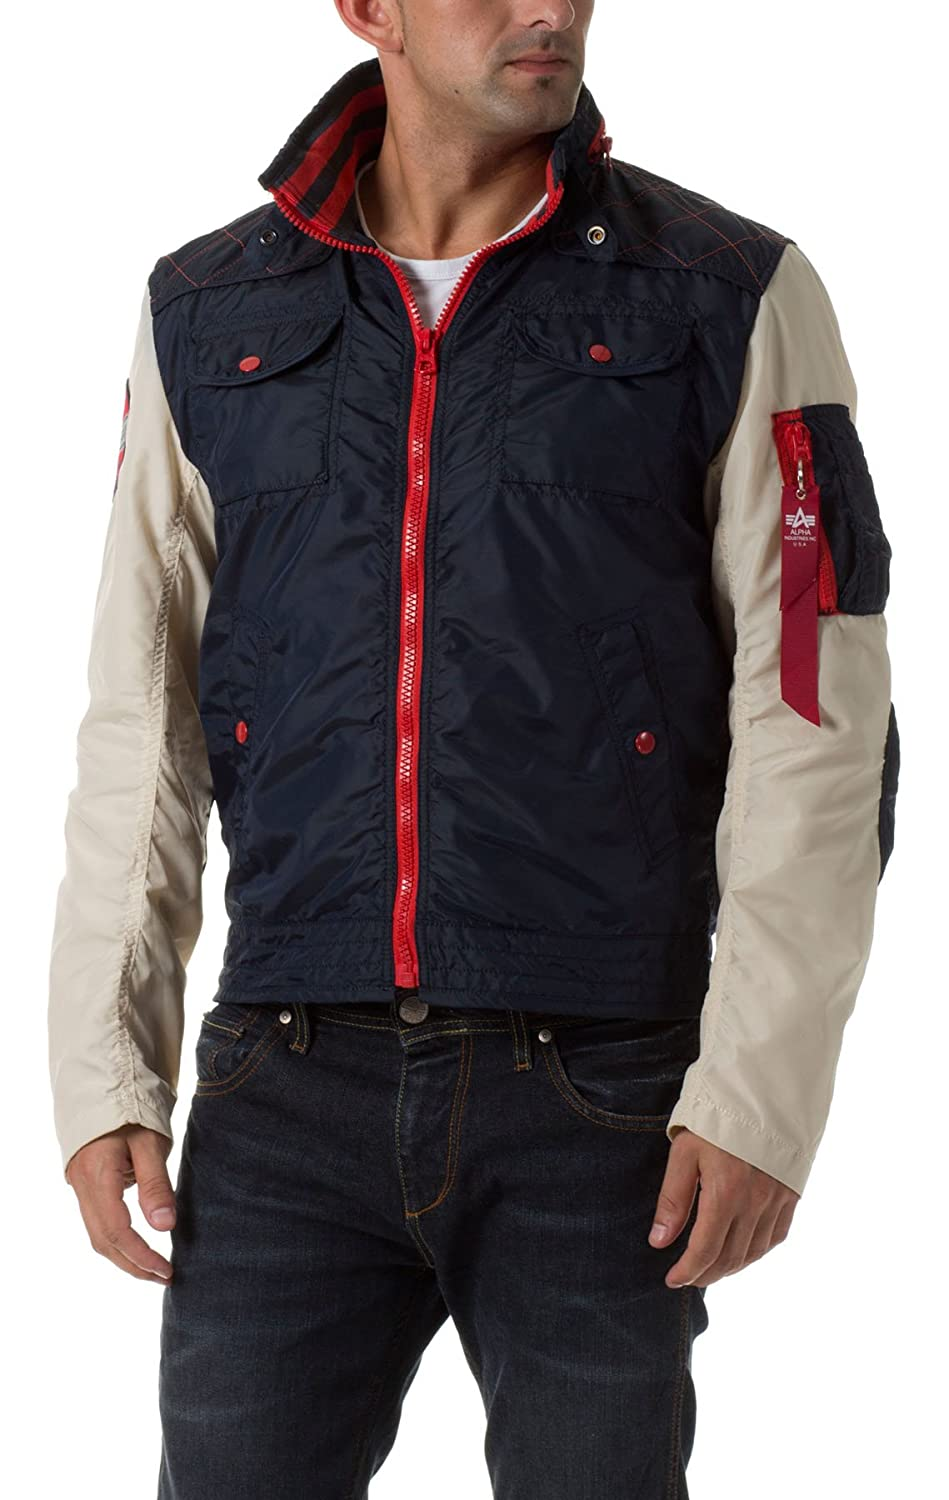 Alpha Industries MC Club Jacket Übergangsjacke Bla online kaufen